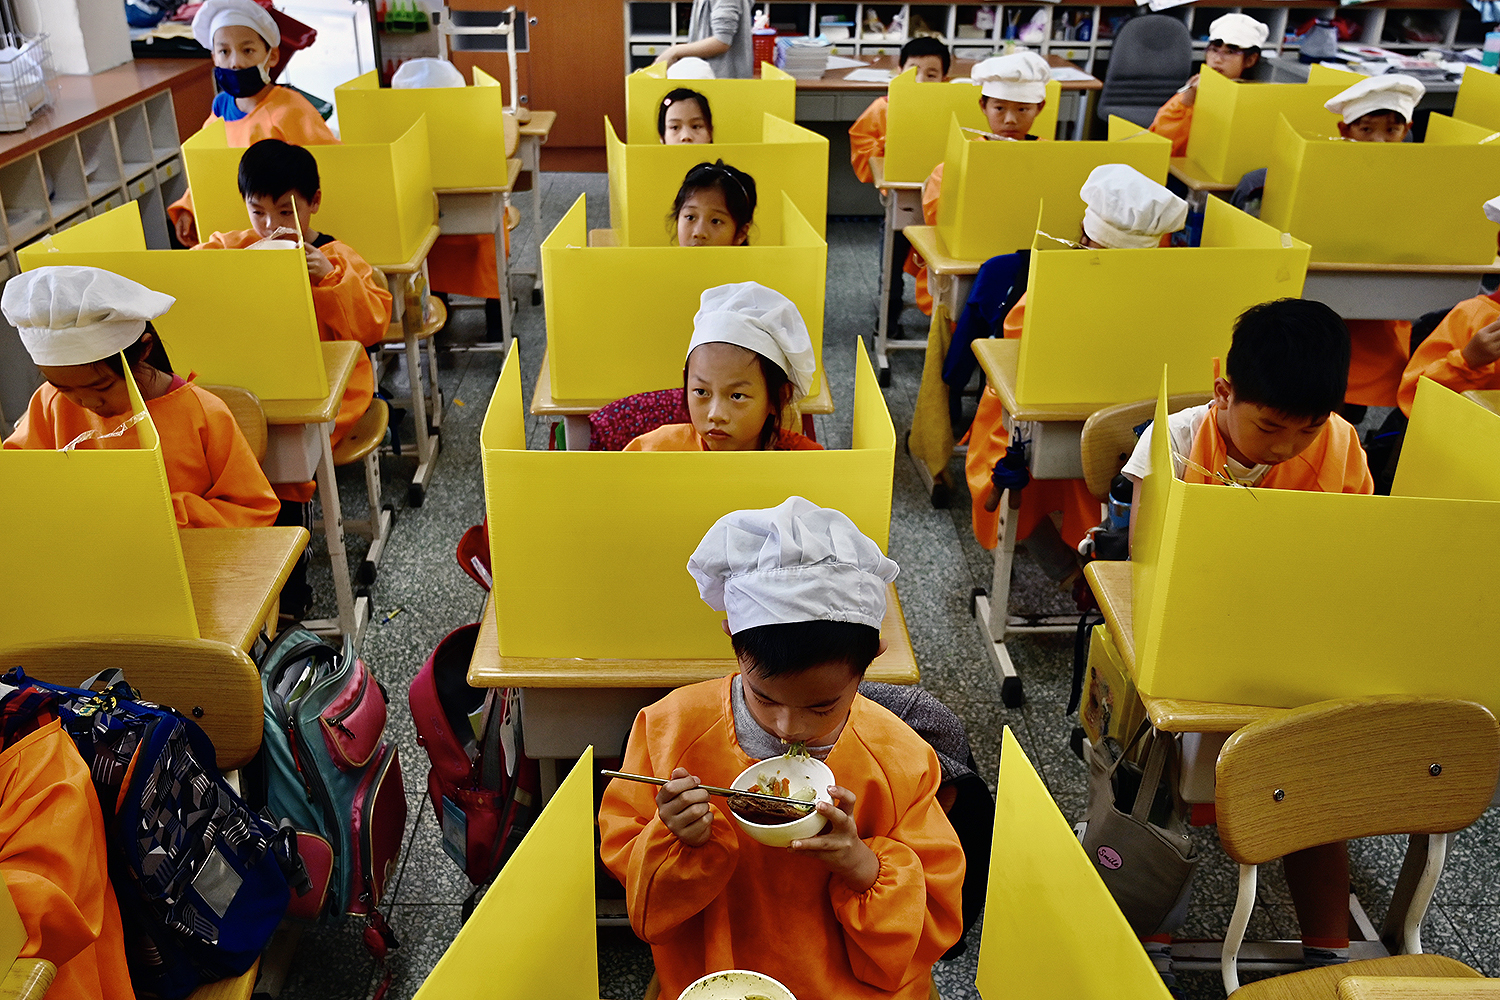 Students eat lunch on desks with plastic partitions as a preventive measure to curb the spread of the coronavirus at Dajia Elementary School in Taipei, Taiwan, on April 29. SAM YEH/AFP via Getty Images)